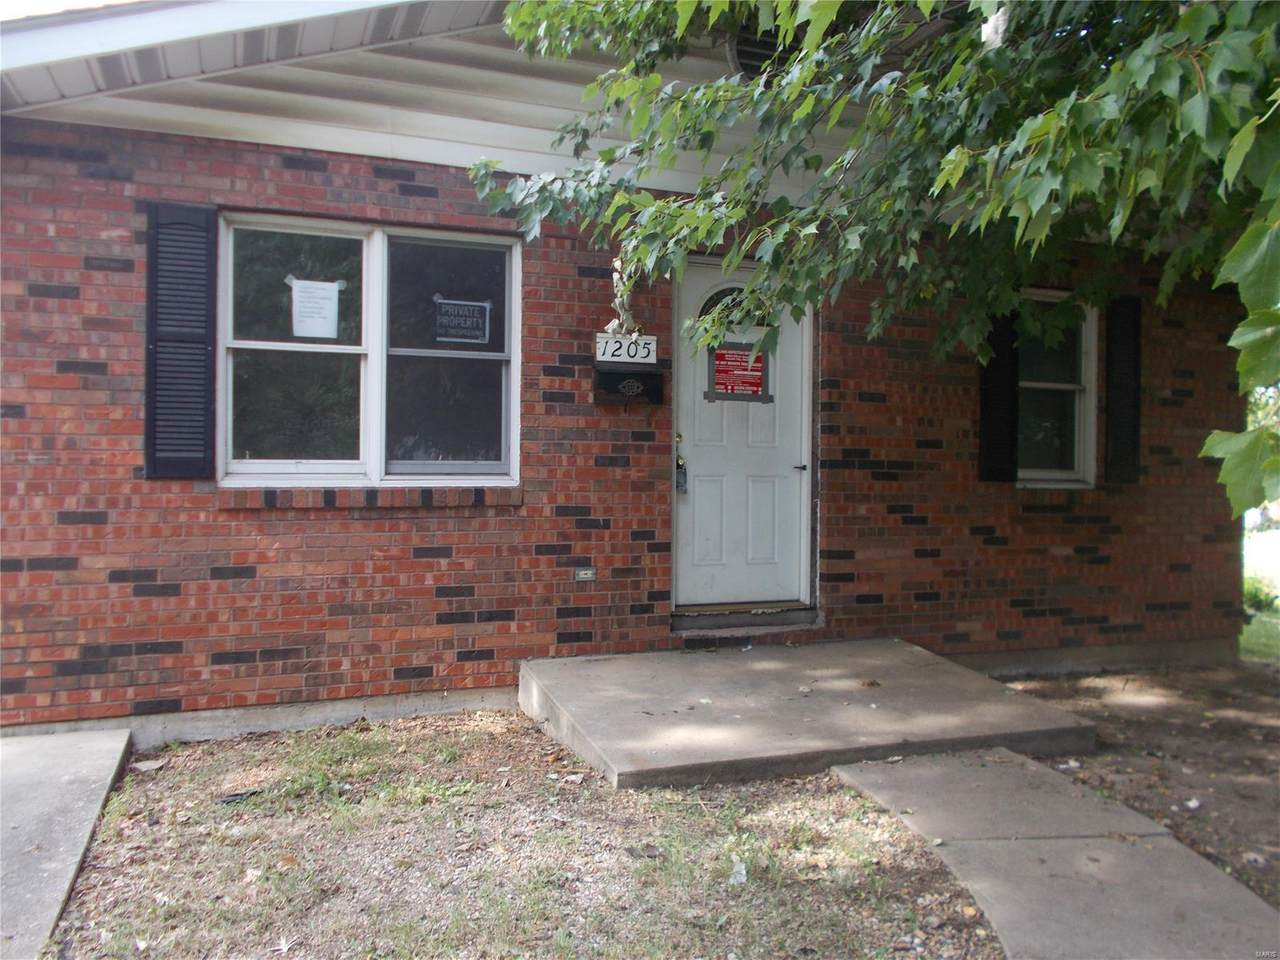 1205 Saint Paul Avenue - Photo 1